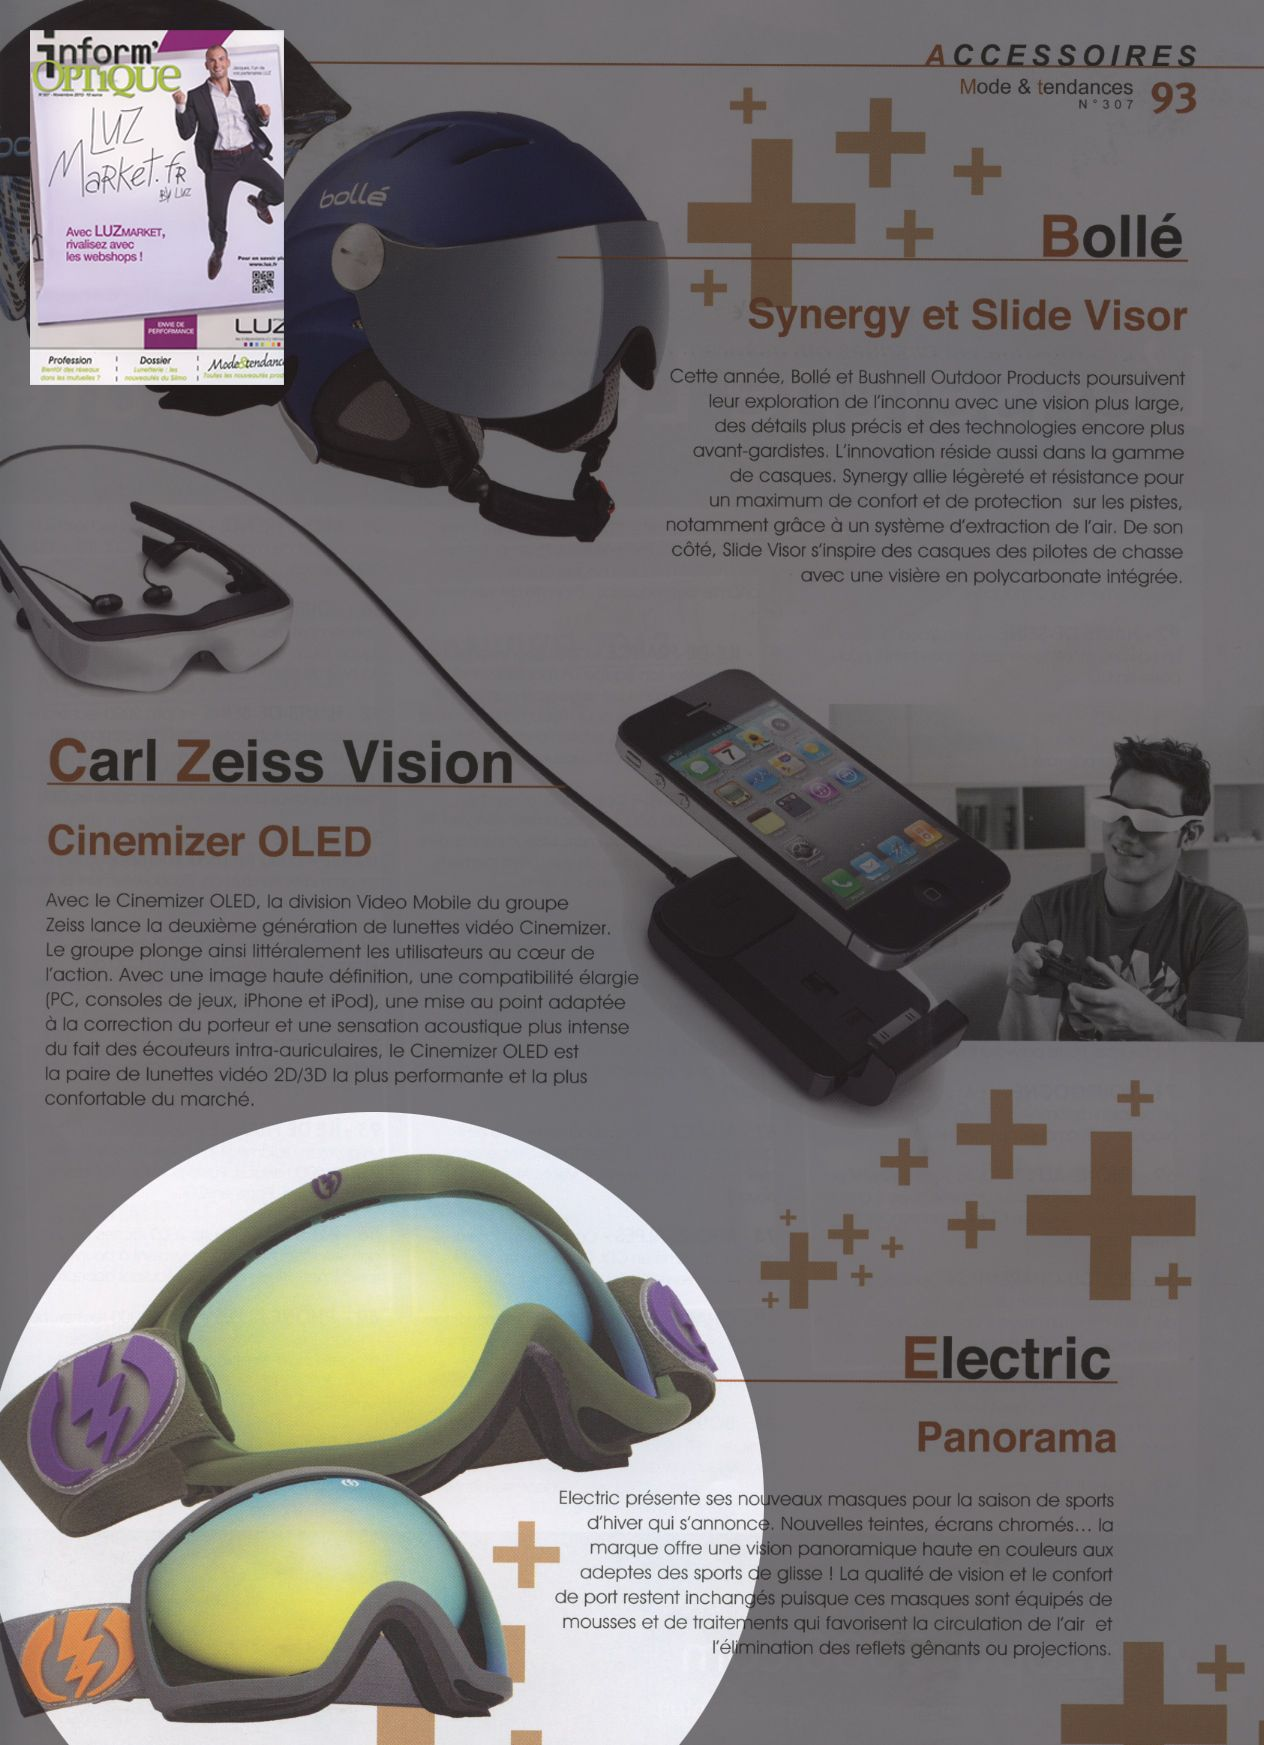 Inform'Optique - French Magazine - EG5S, EG2.5 - Nov12